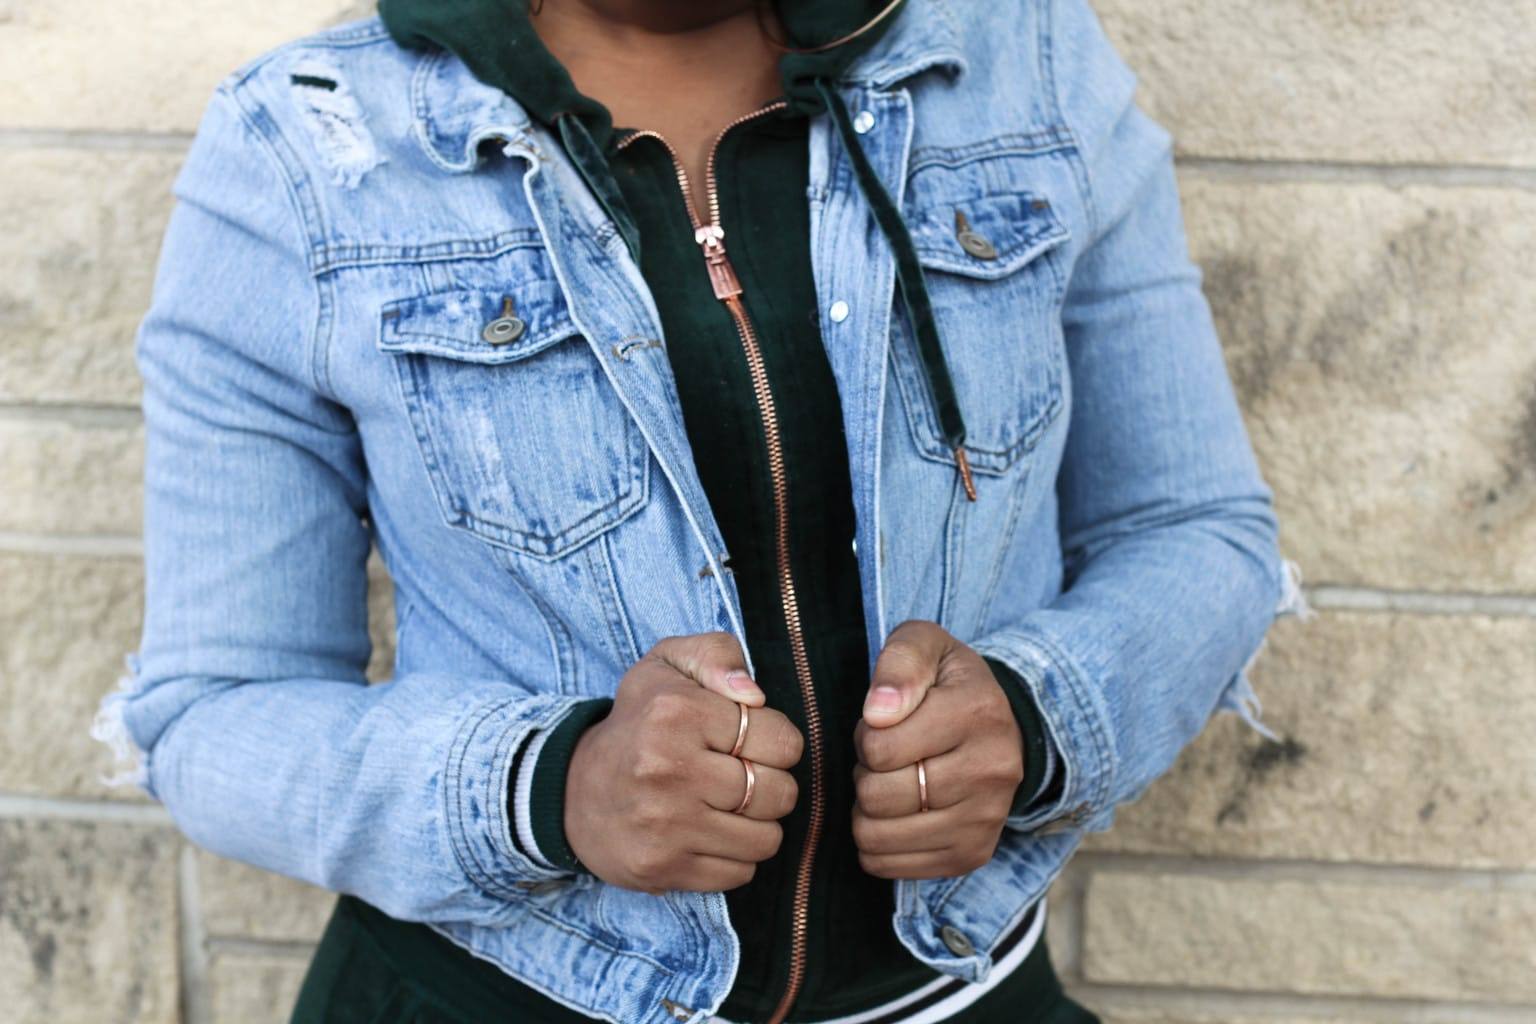 Chaunice's emerald velour tracksuit hoodie with a rosegold zipper is grungier with her light denim jacket over the top.